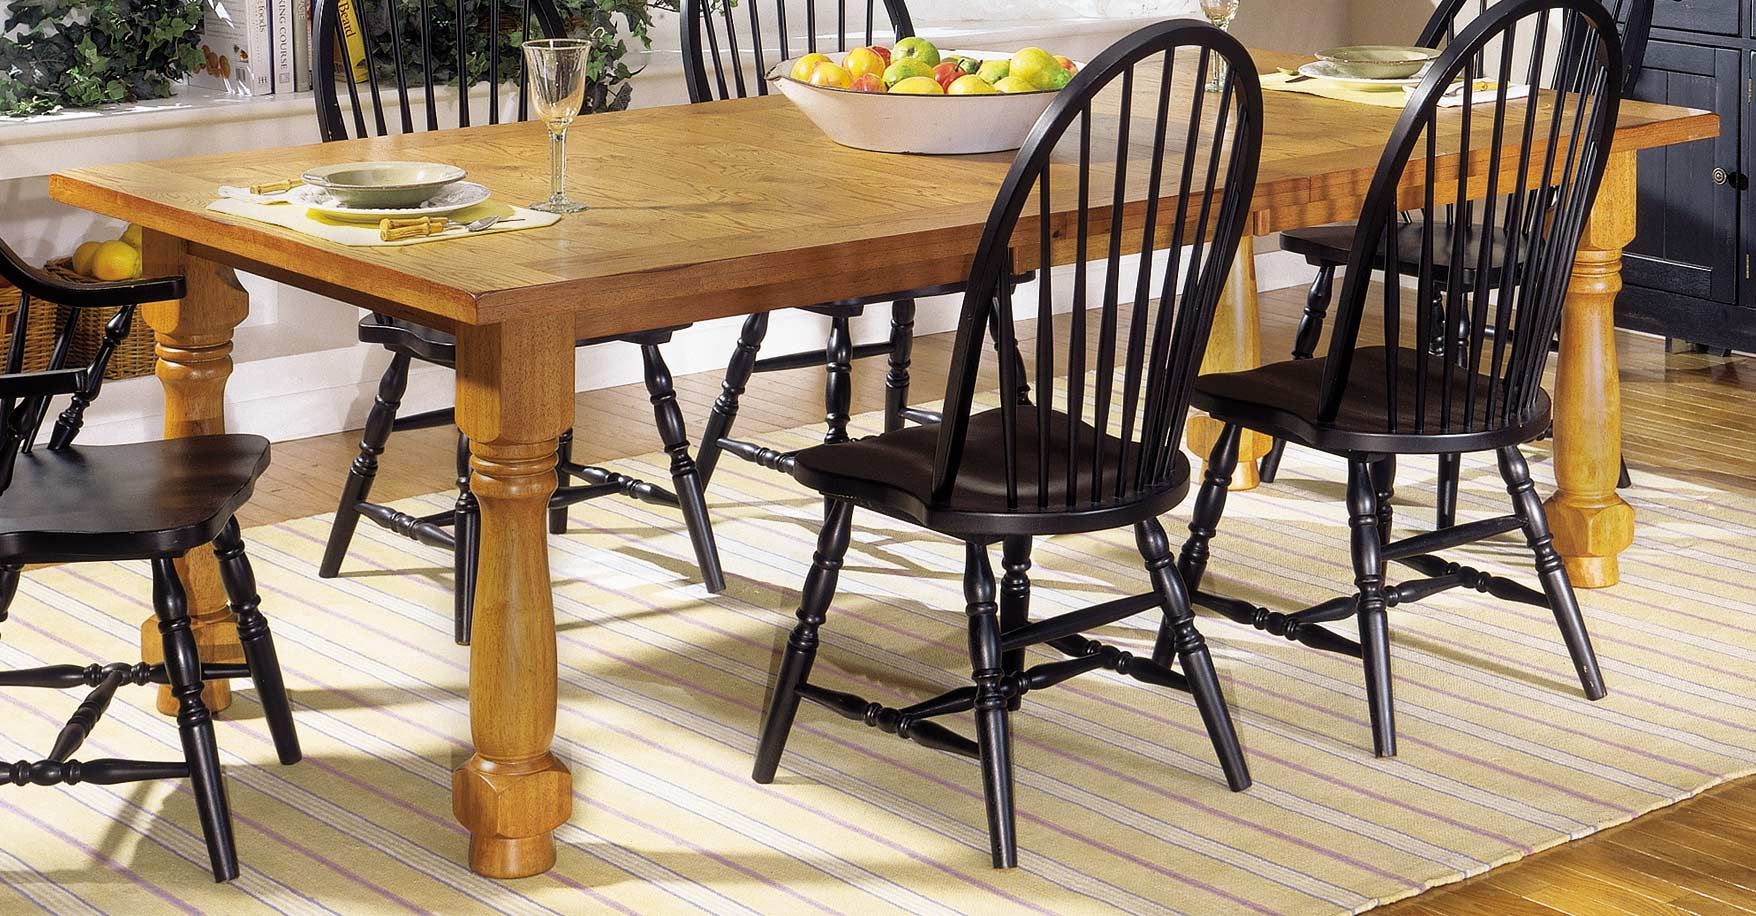 Homelegance American Dreamer Dining Table with Extension